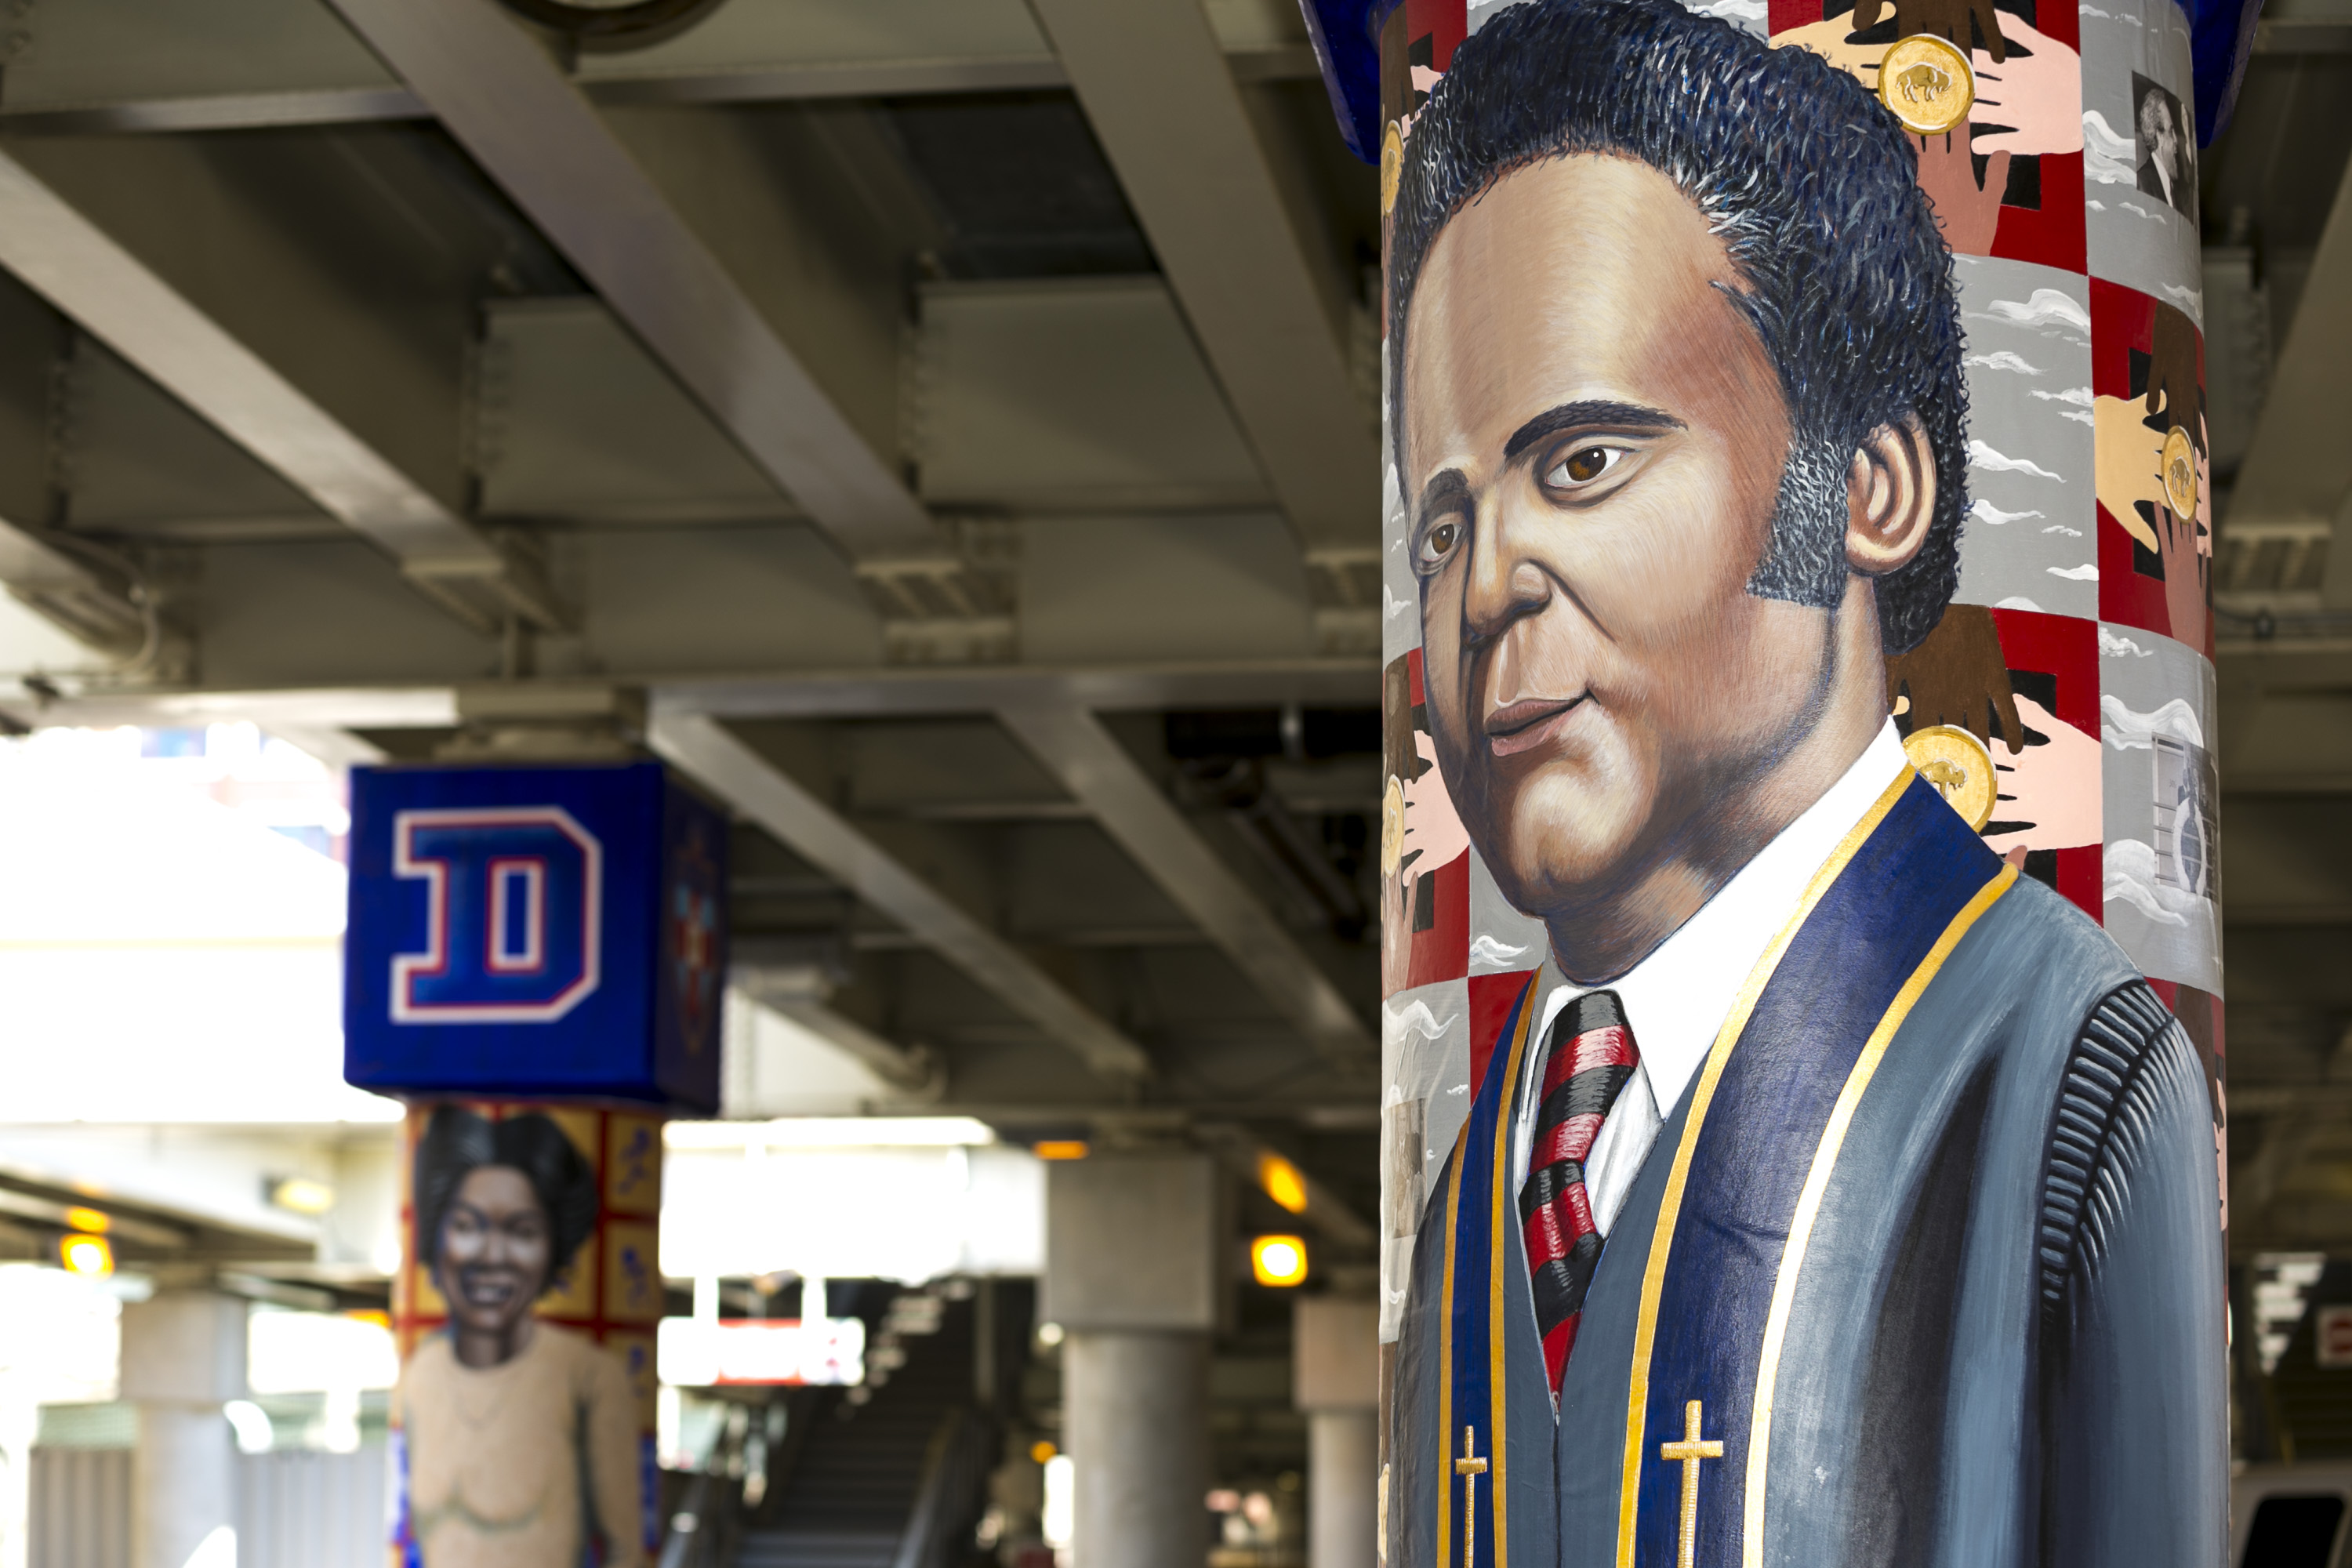 "The mural of civil rights activist and DePaul Law School graduate Benjamin Hooks (foreground) is painted next to Olympian and DePaul track star •	Mabel ""Dolly"" Landry Staton. The murals are part of a larger public art project honoring important historical figures from DePaul's past. (DePaul University/Joel Dik)"